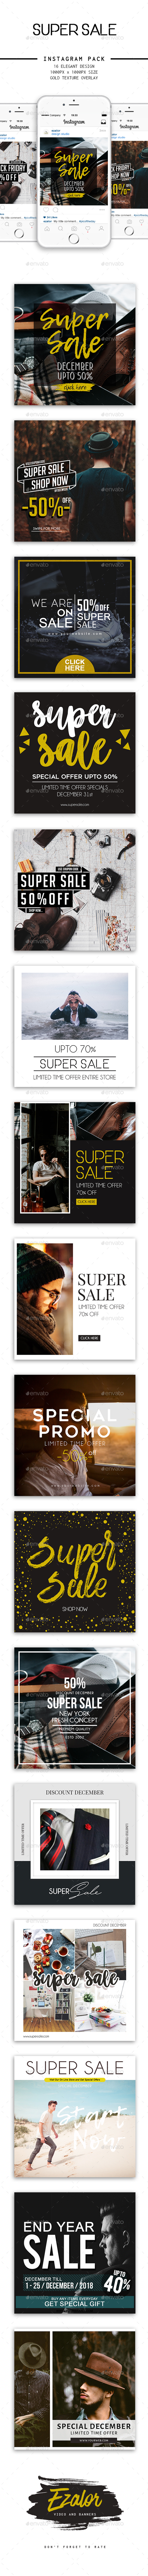 Super Sale - Banners & Ads Web Elements